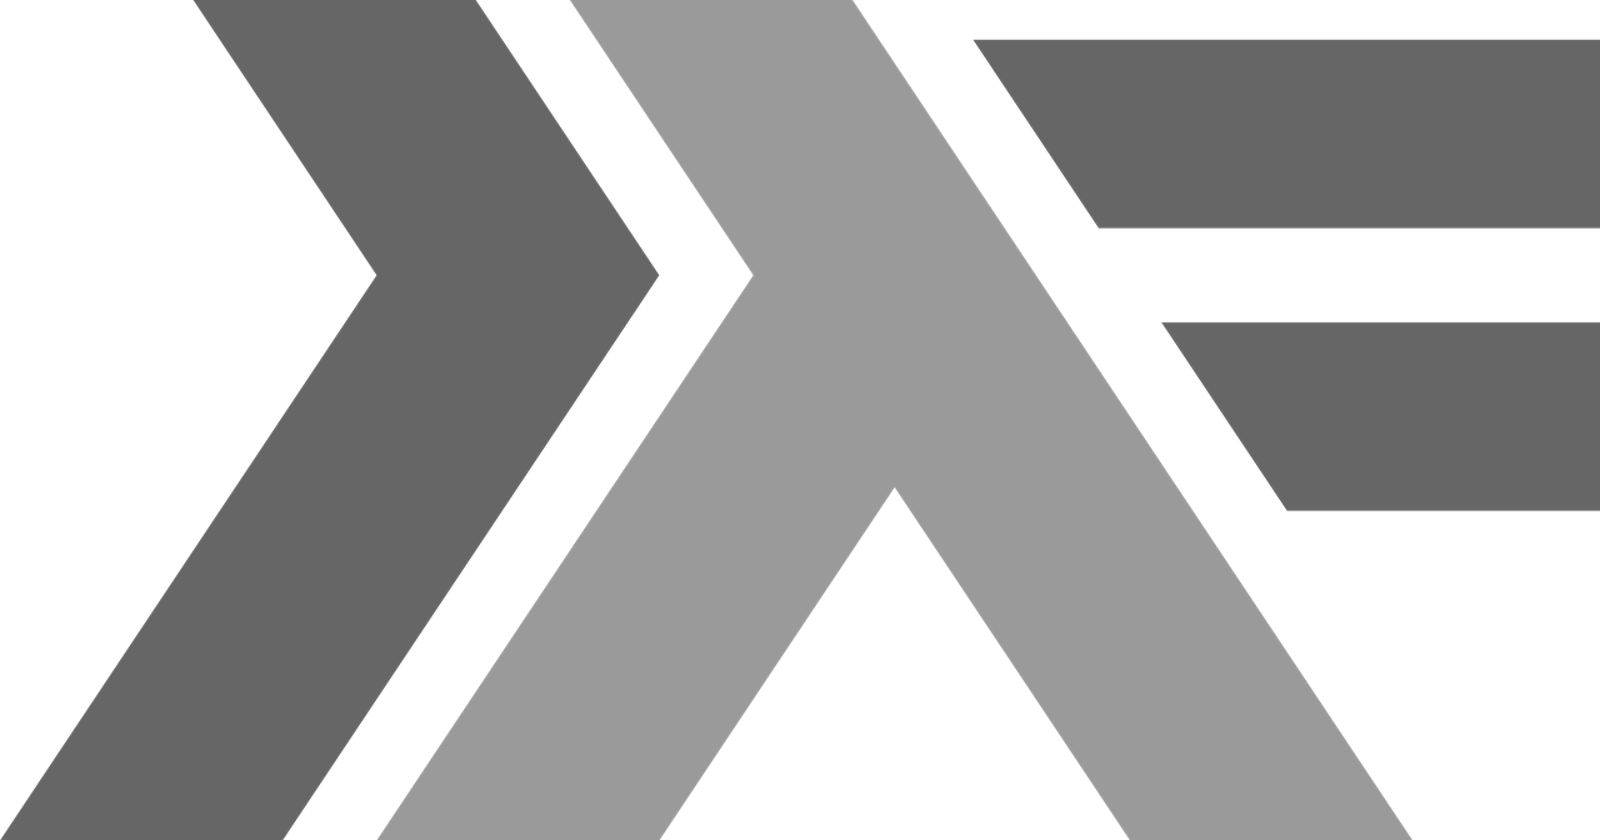 Resources for learning Haskell